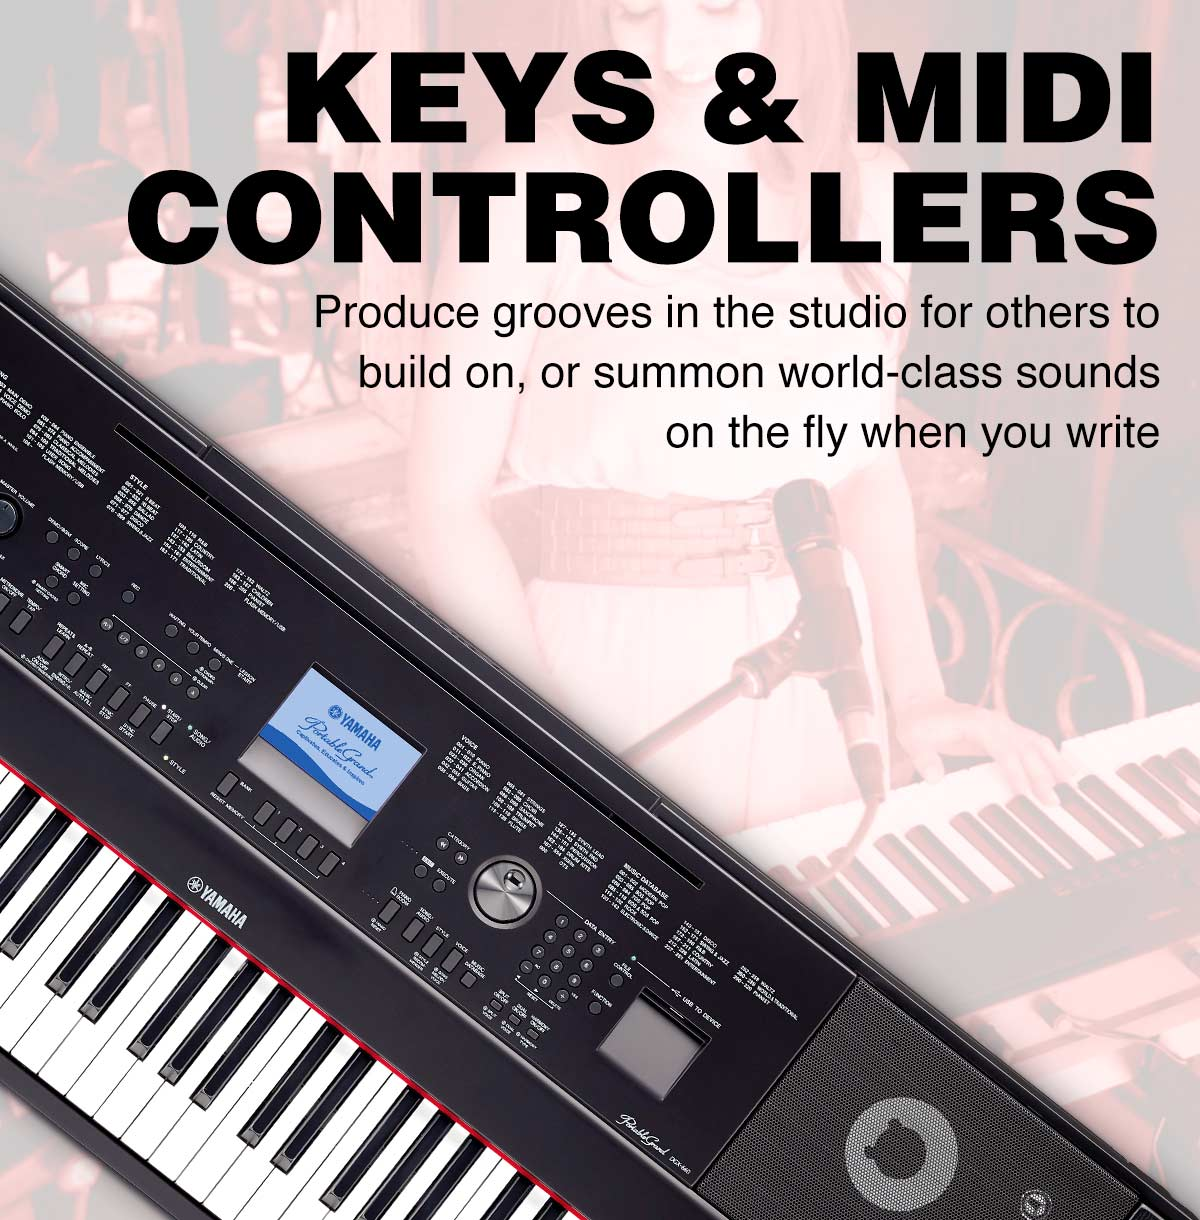 Keys and MIDI Controllers. Produce grooves in the studio for others to build on or summon world-class soudnds on the fly.